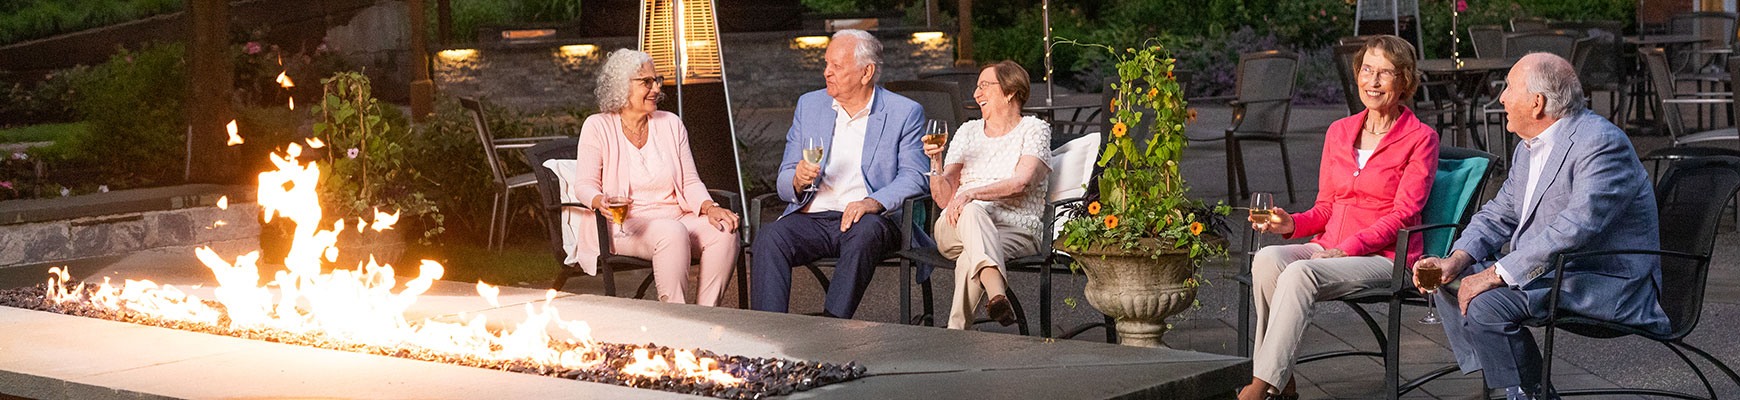 Seniors sitting outside on a patio close to a firepit enjoying an evening glass of wine